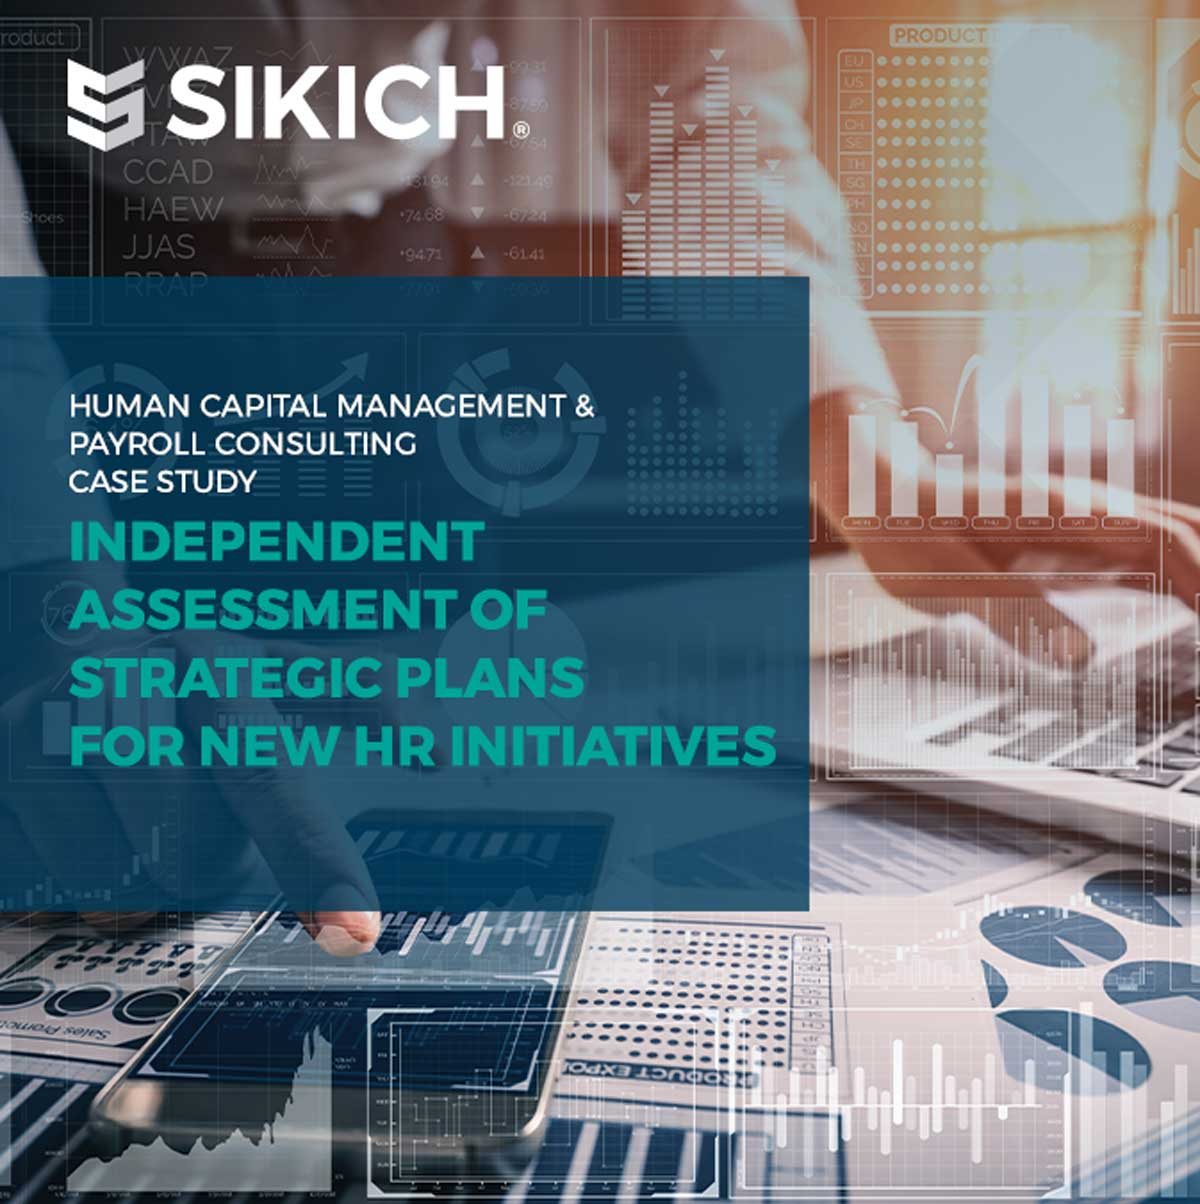 Sikich Independent Assessment of Strategic Plans for New HR Initiatives